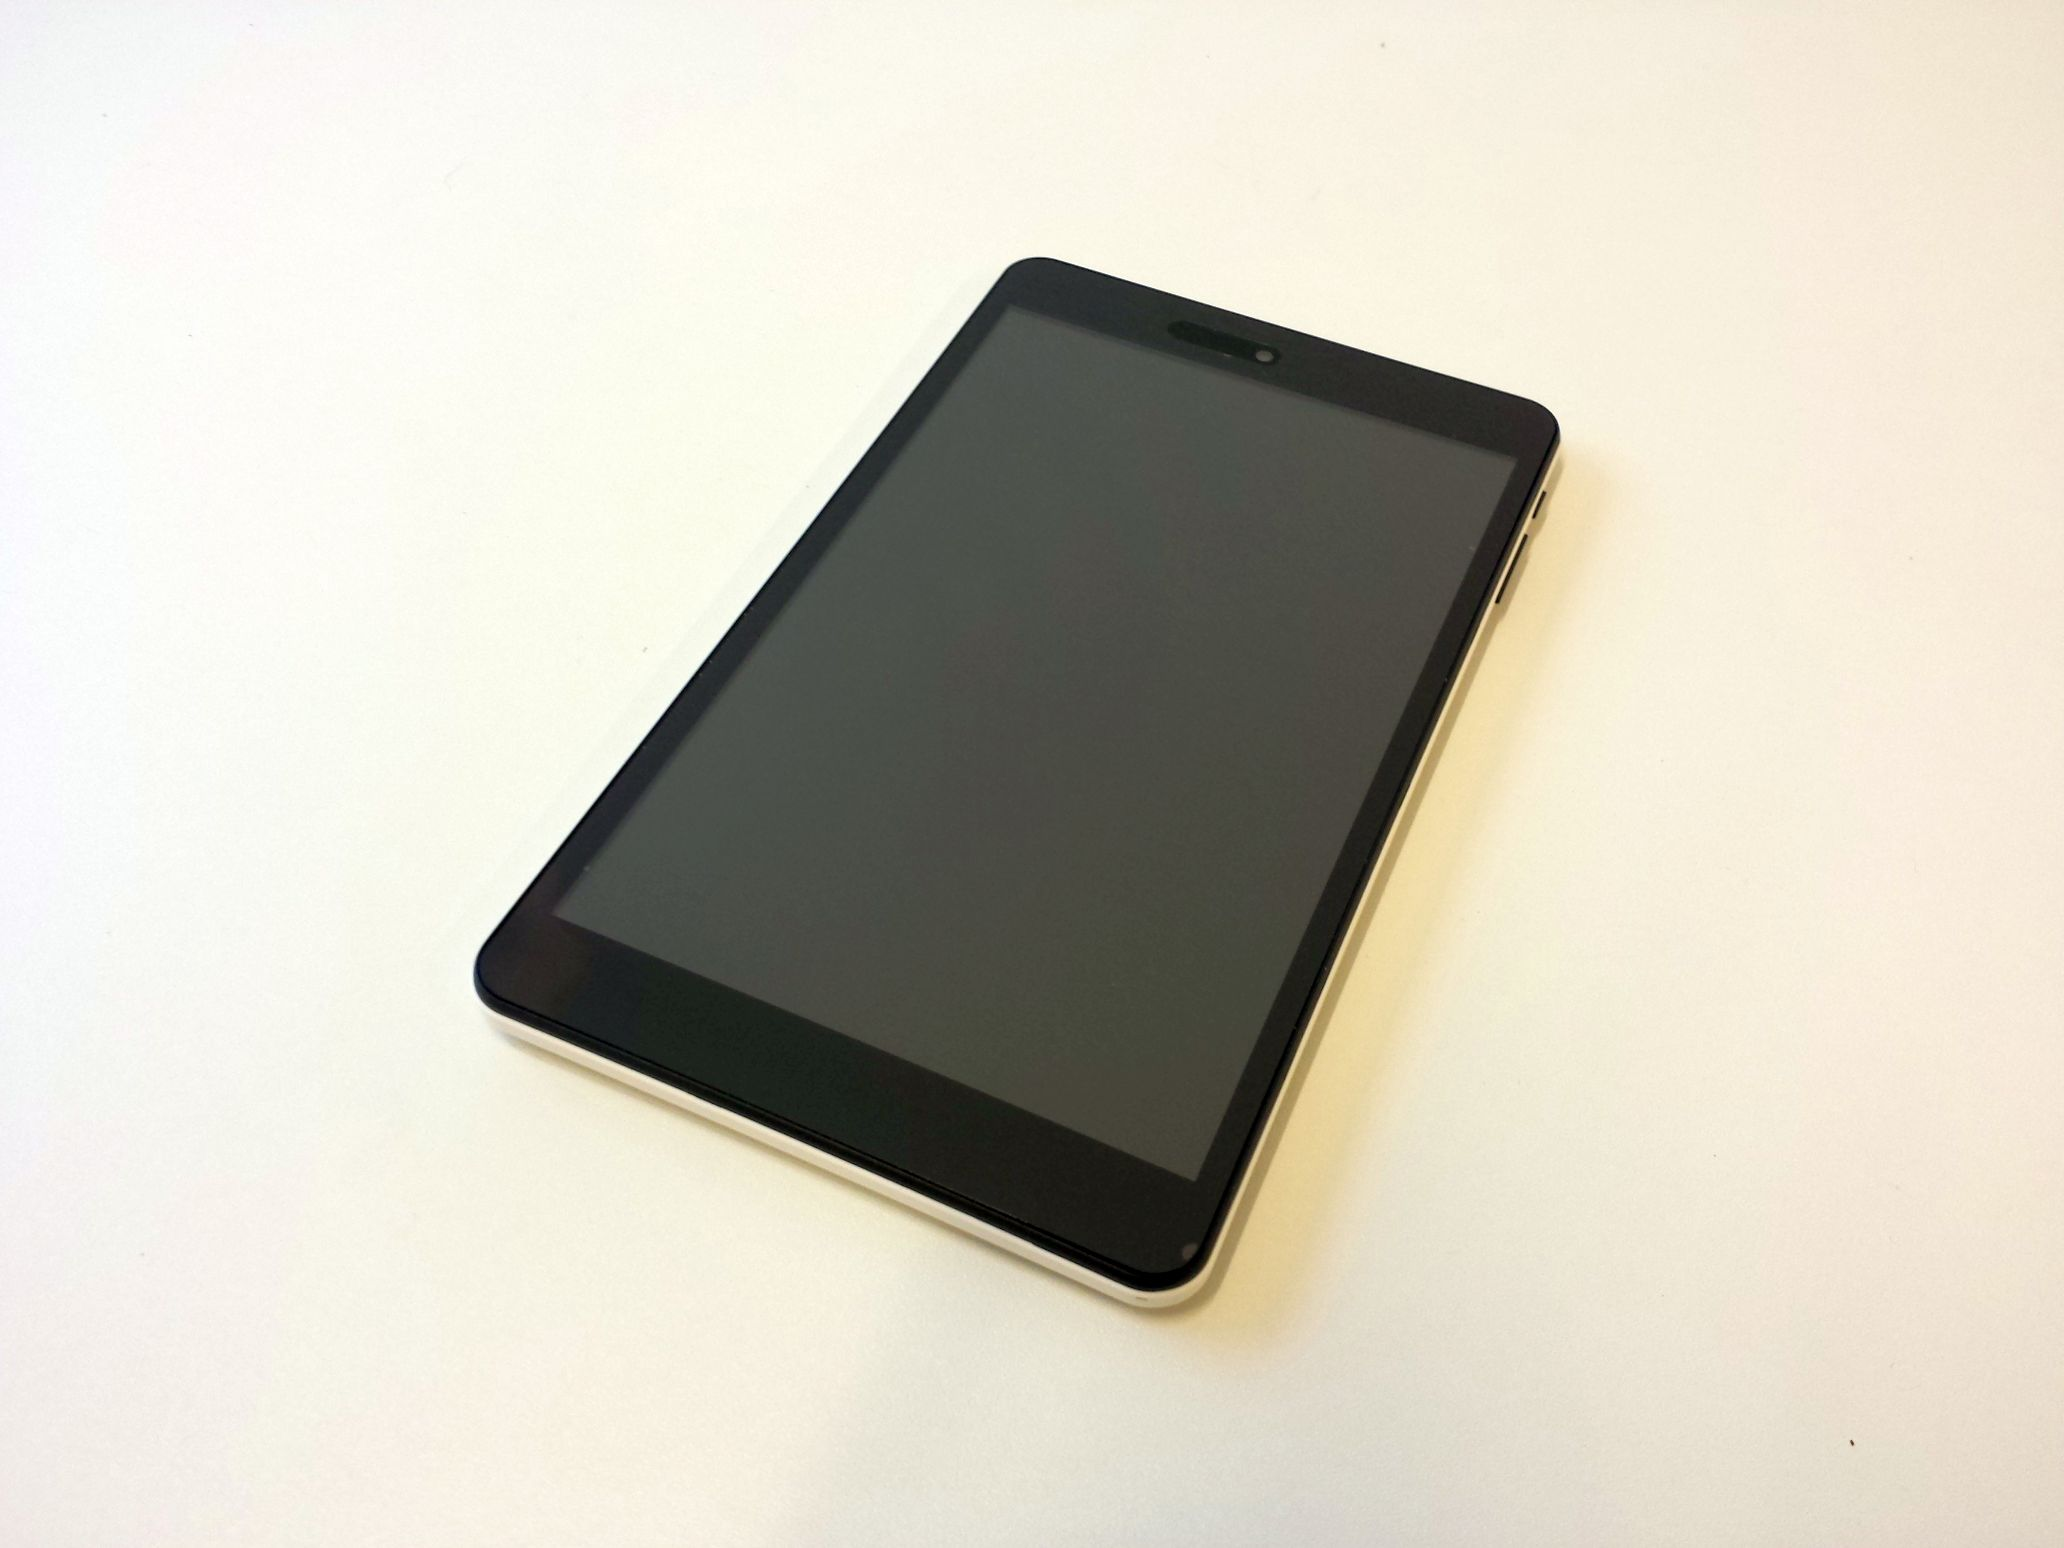 iRULU Walknbook W3Mini Tablet PC | Micha's Blog